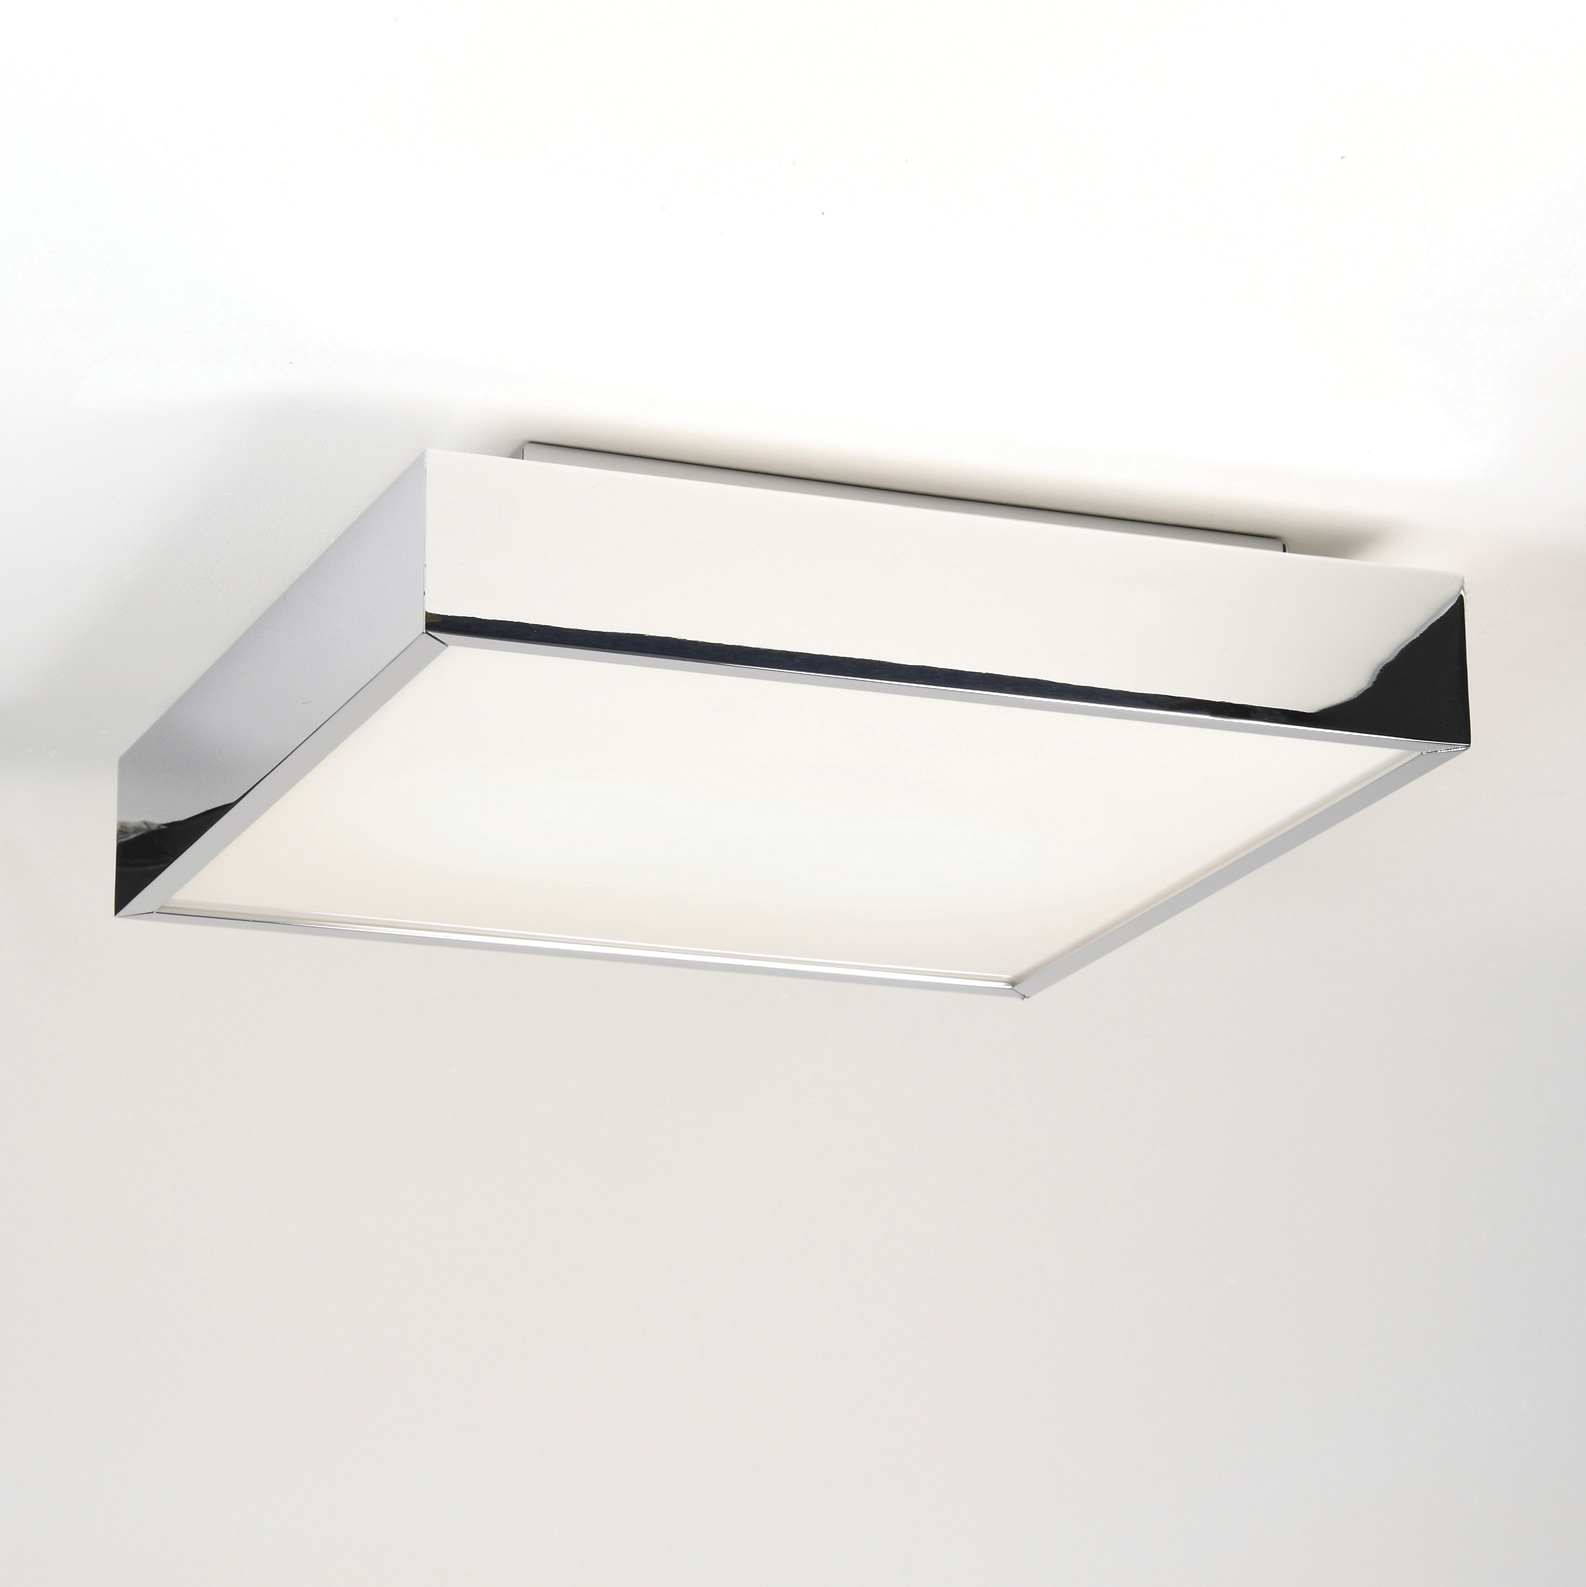 Led Ceiling Lights For Bathroom : Astro taketa led square bathroom ceiling light w